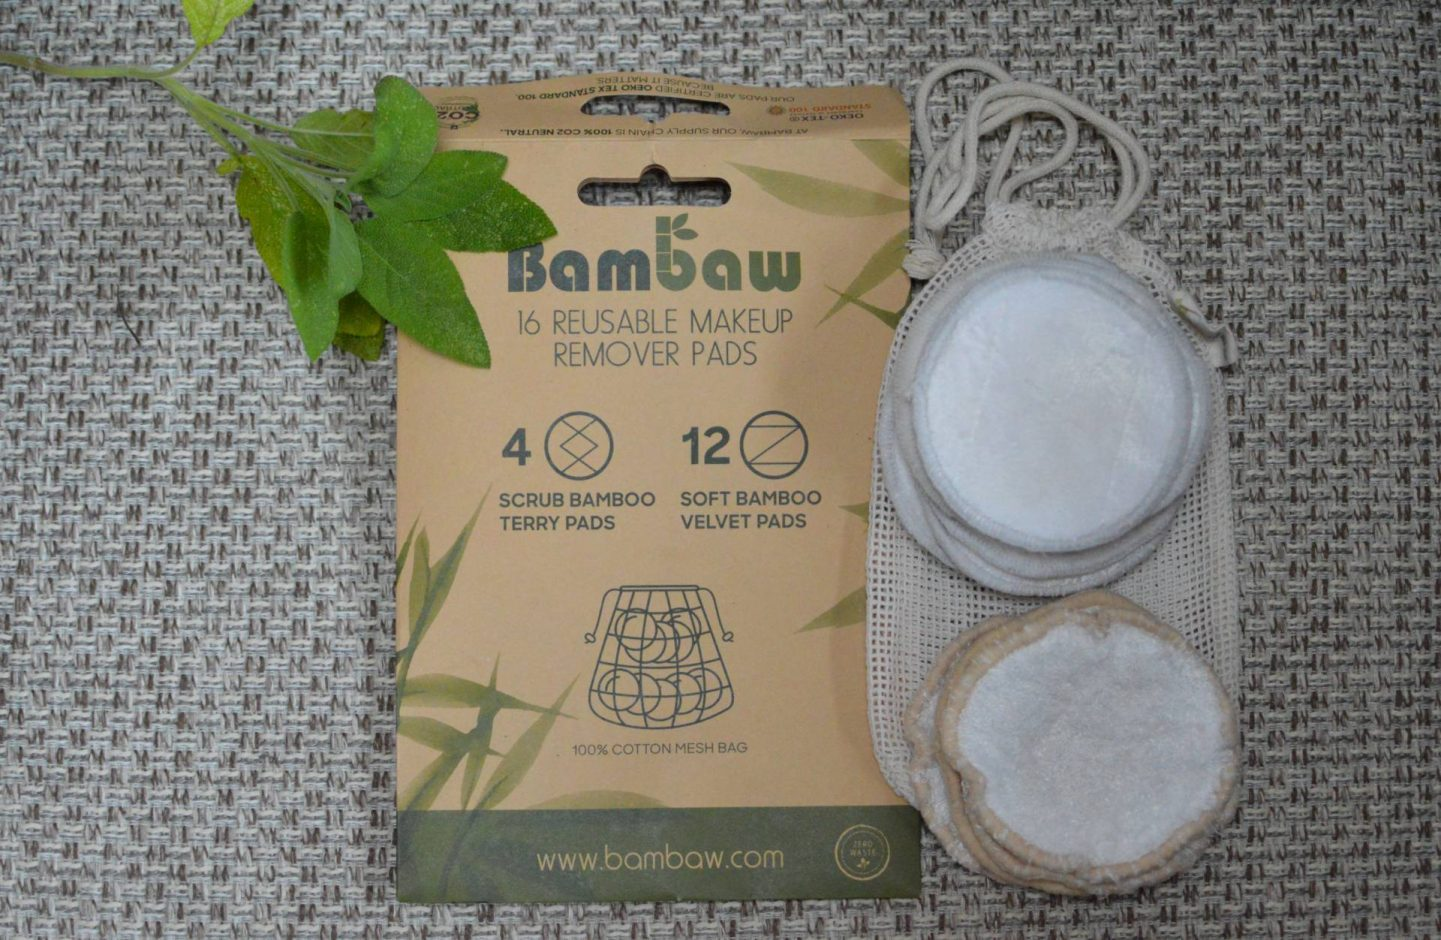 Easy Eco-Friendly Beauty Swaps, Bambaw reusable makeup pads